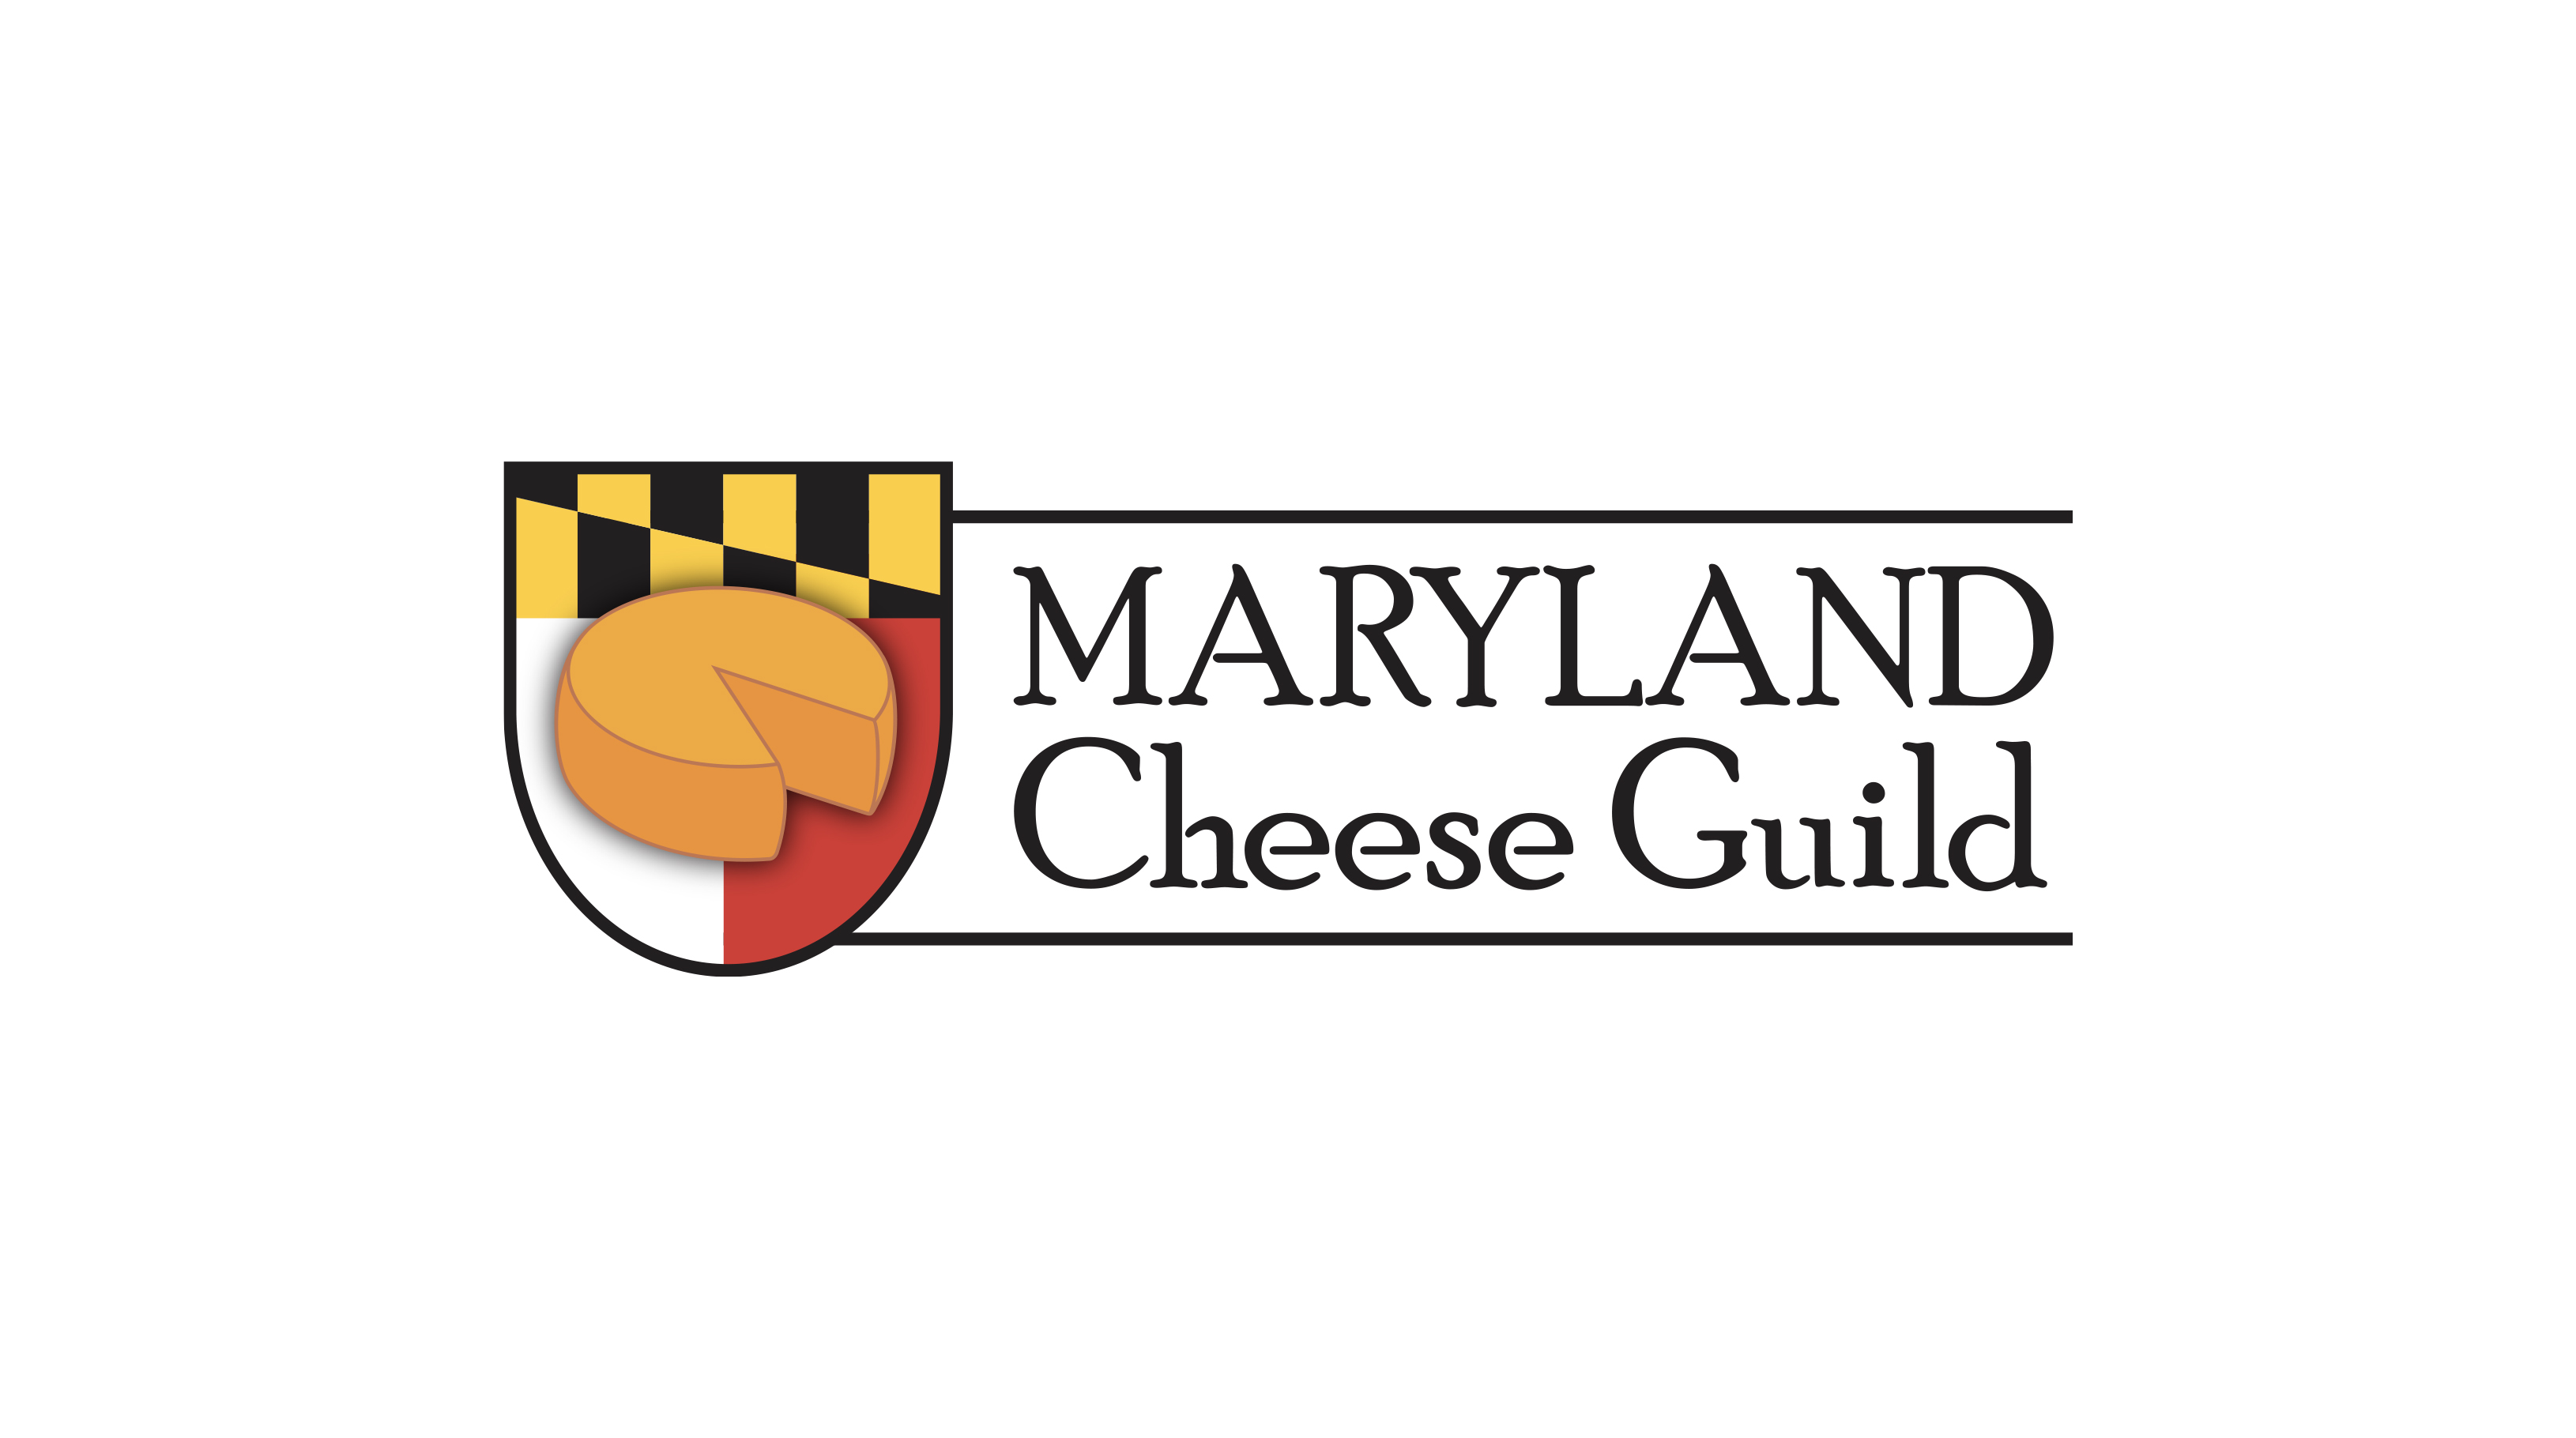 Maryland Cheese Guild logo